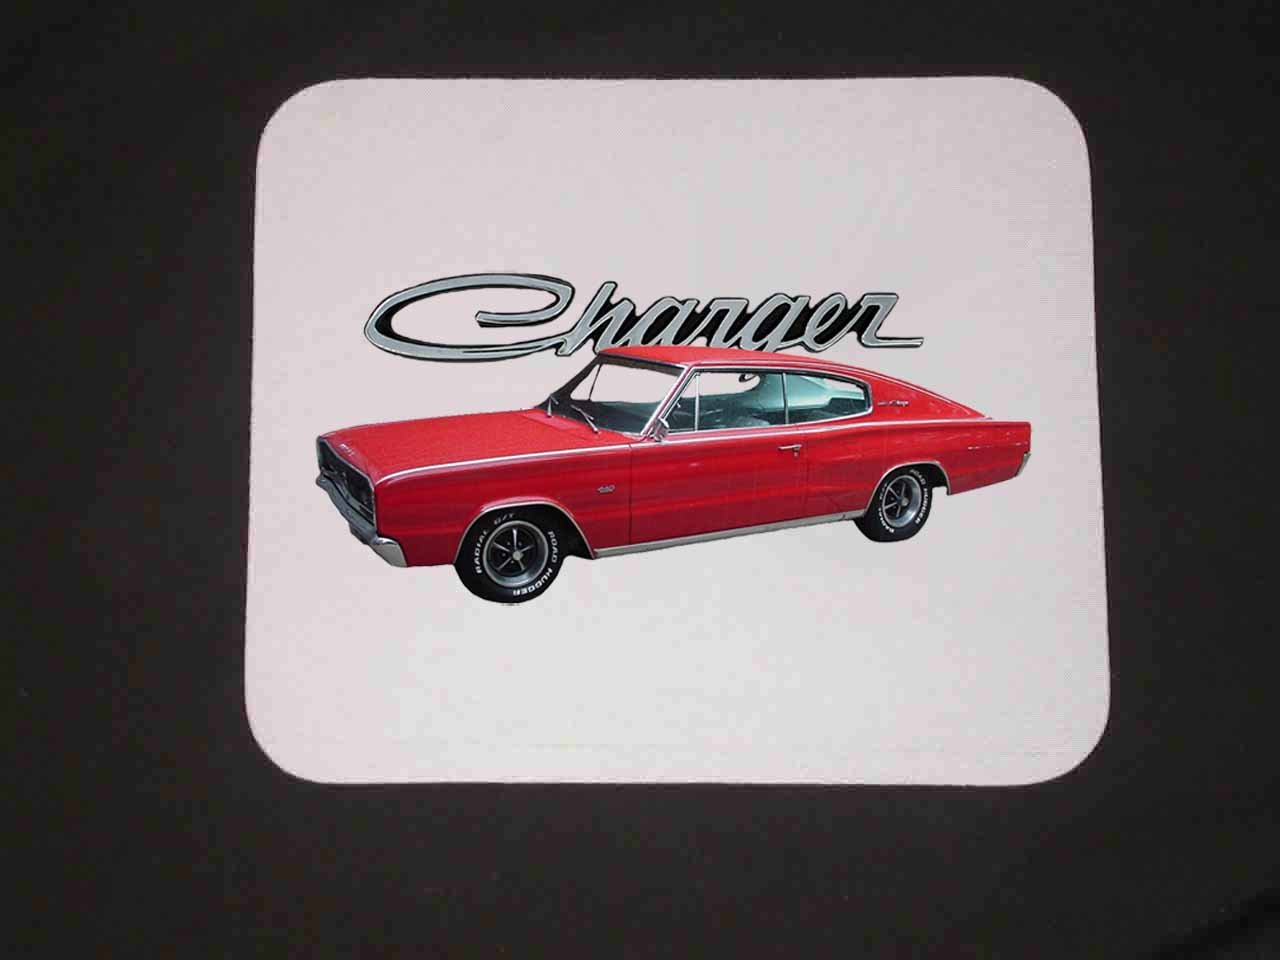 New 1966 Dodge Charger Mousepad!!